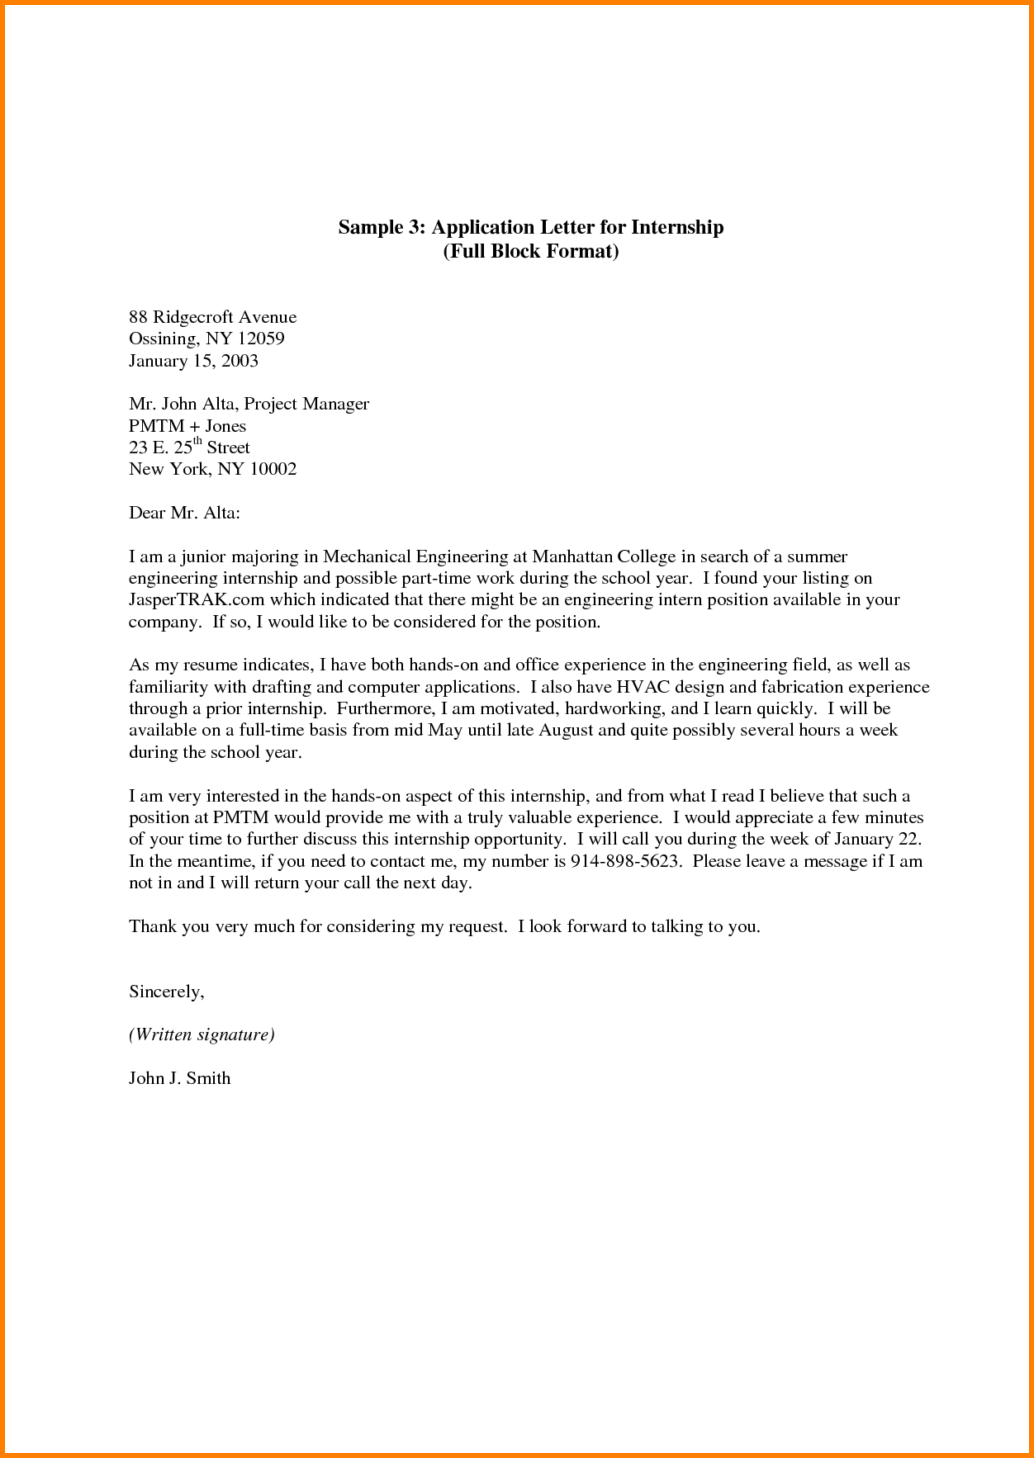 College Cover Letter Amusing Full Block Letter Others Application And Format Example Sales Inspiration